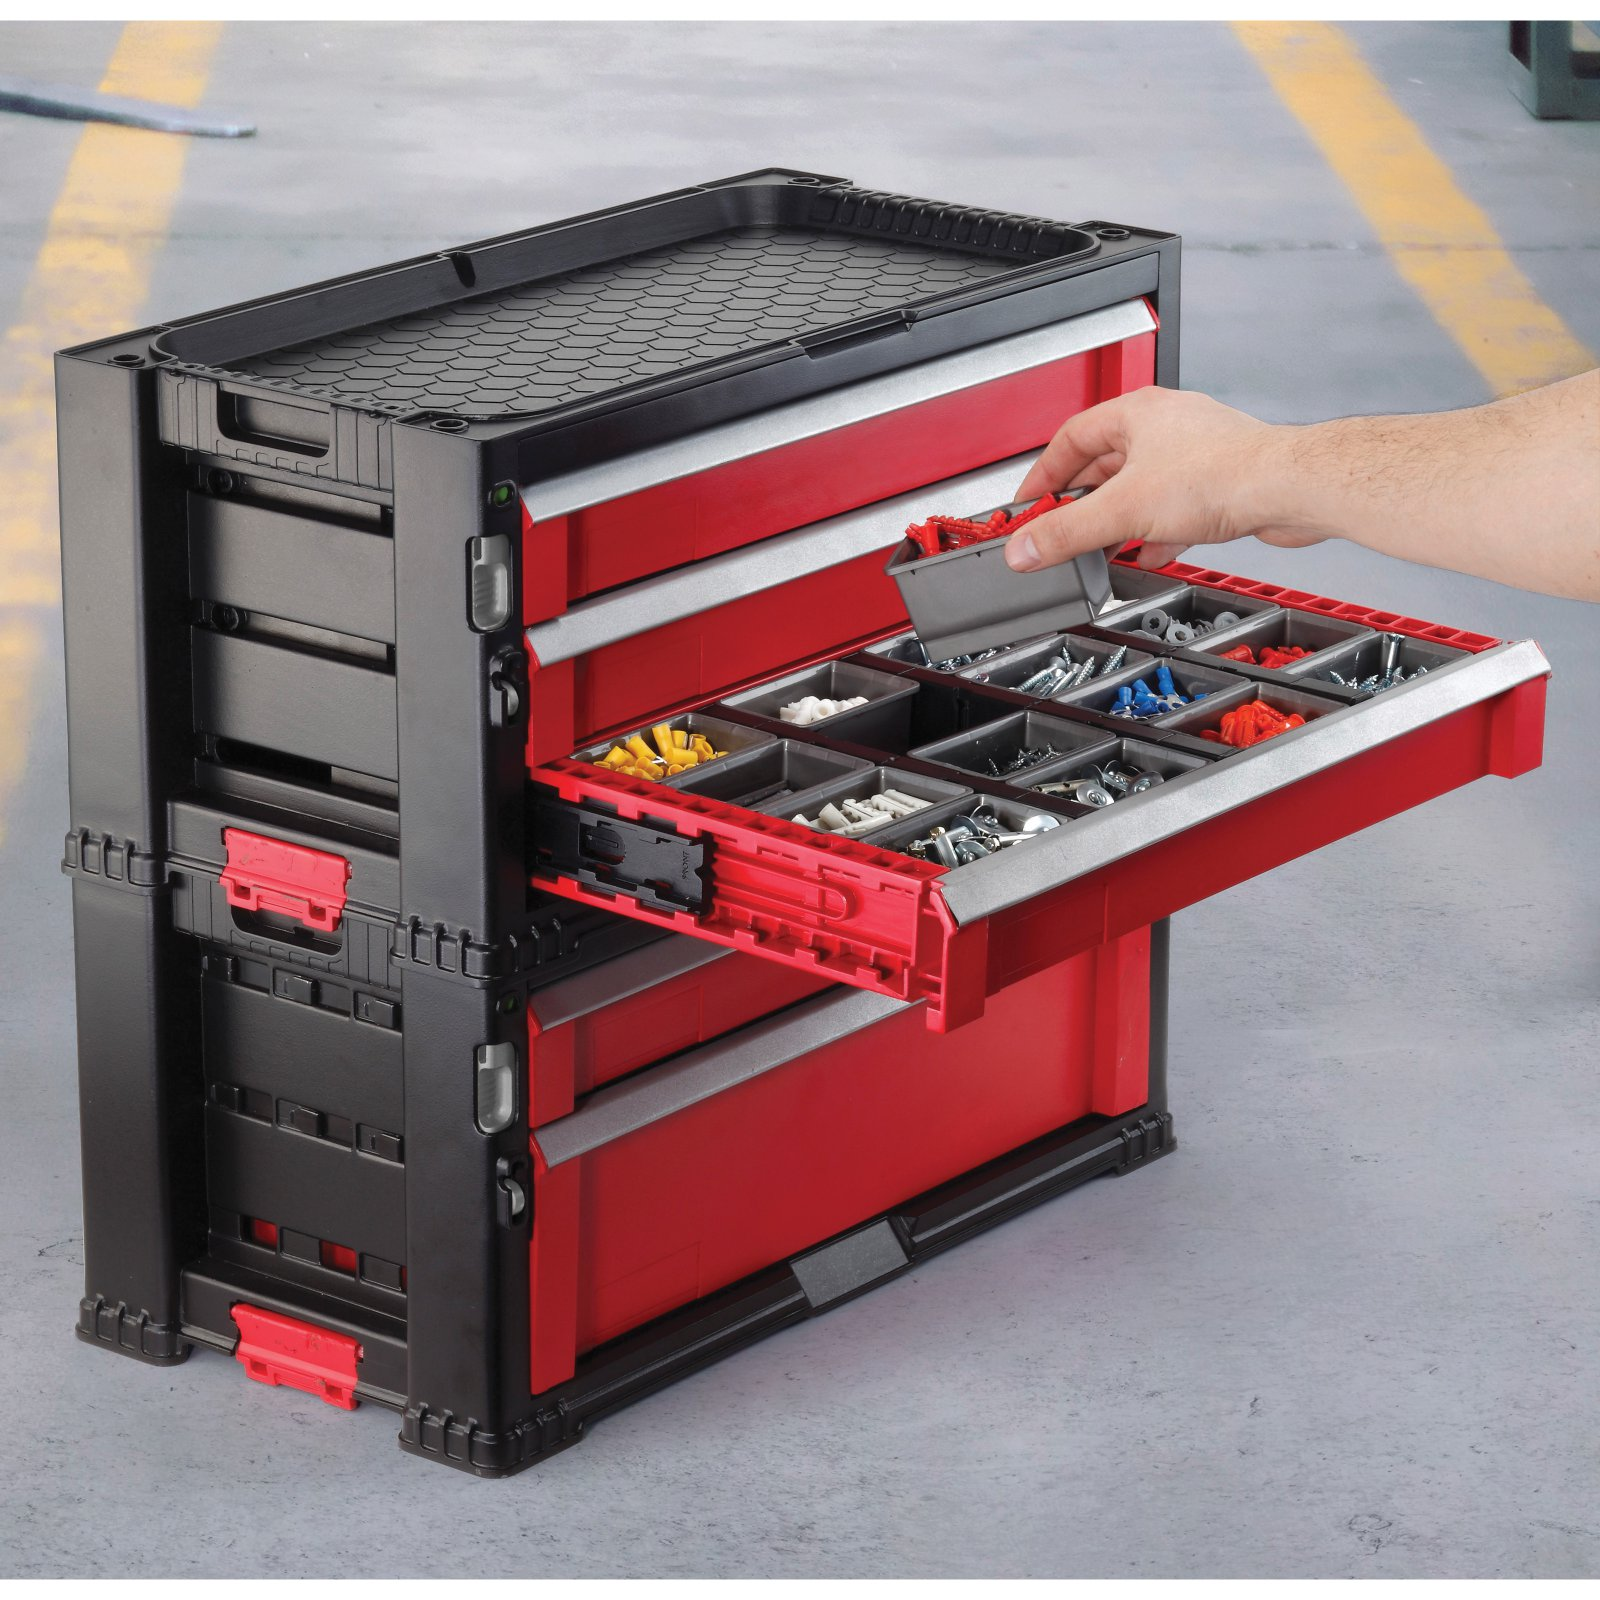 Keter 5 Drawer Tool Chest System by Keter North America